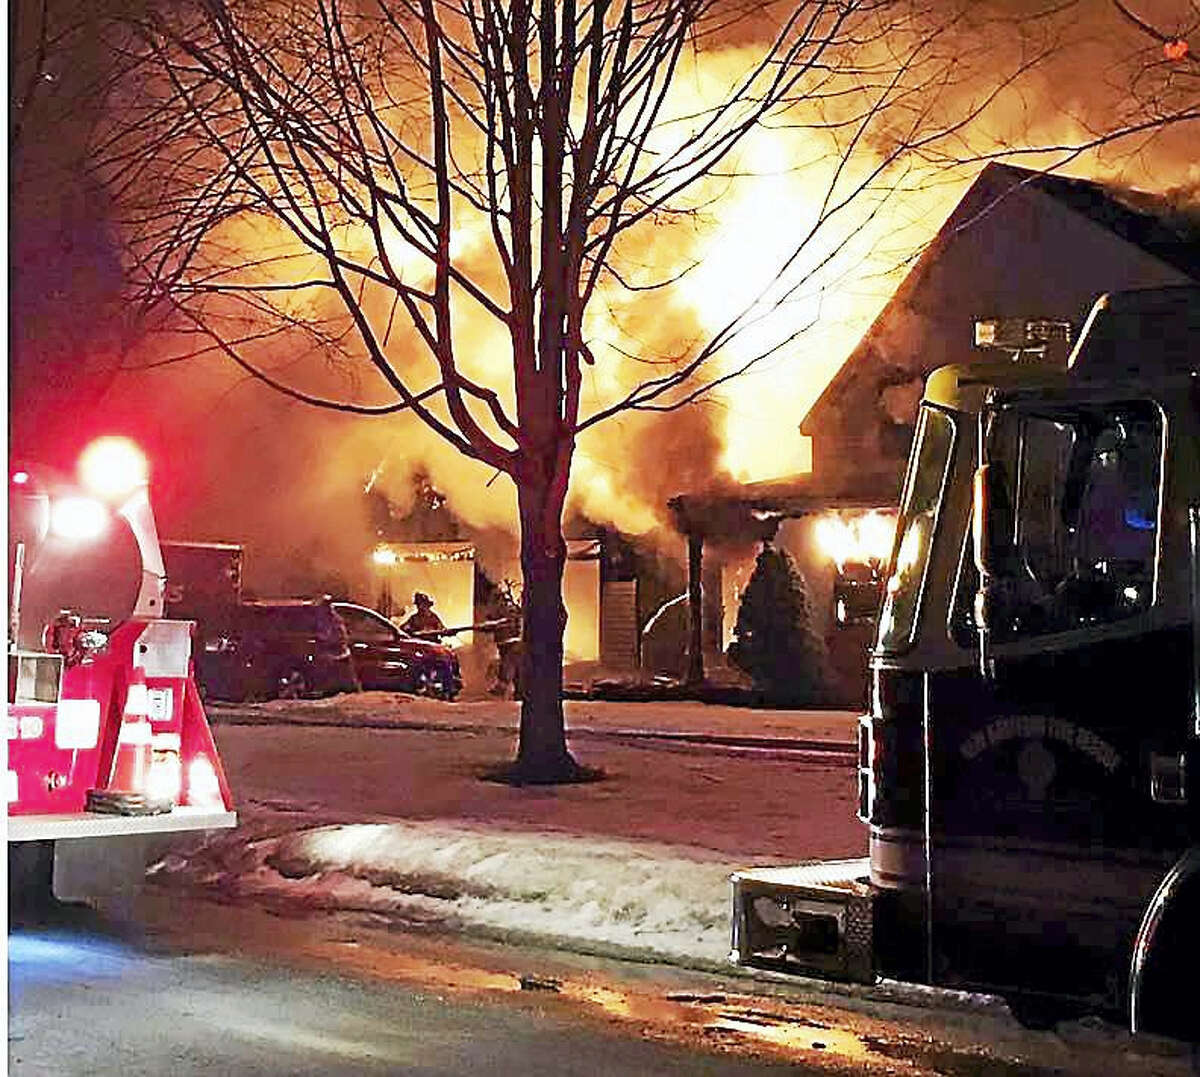 Crews from New Hartford and several other area departments battled a two-alarm blaze Wednesday night at a home on Arrowhead Drive.